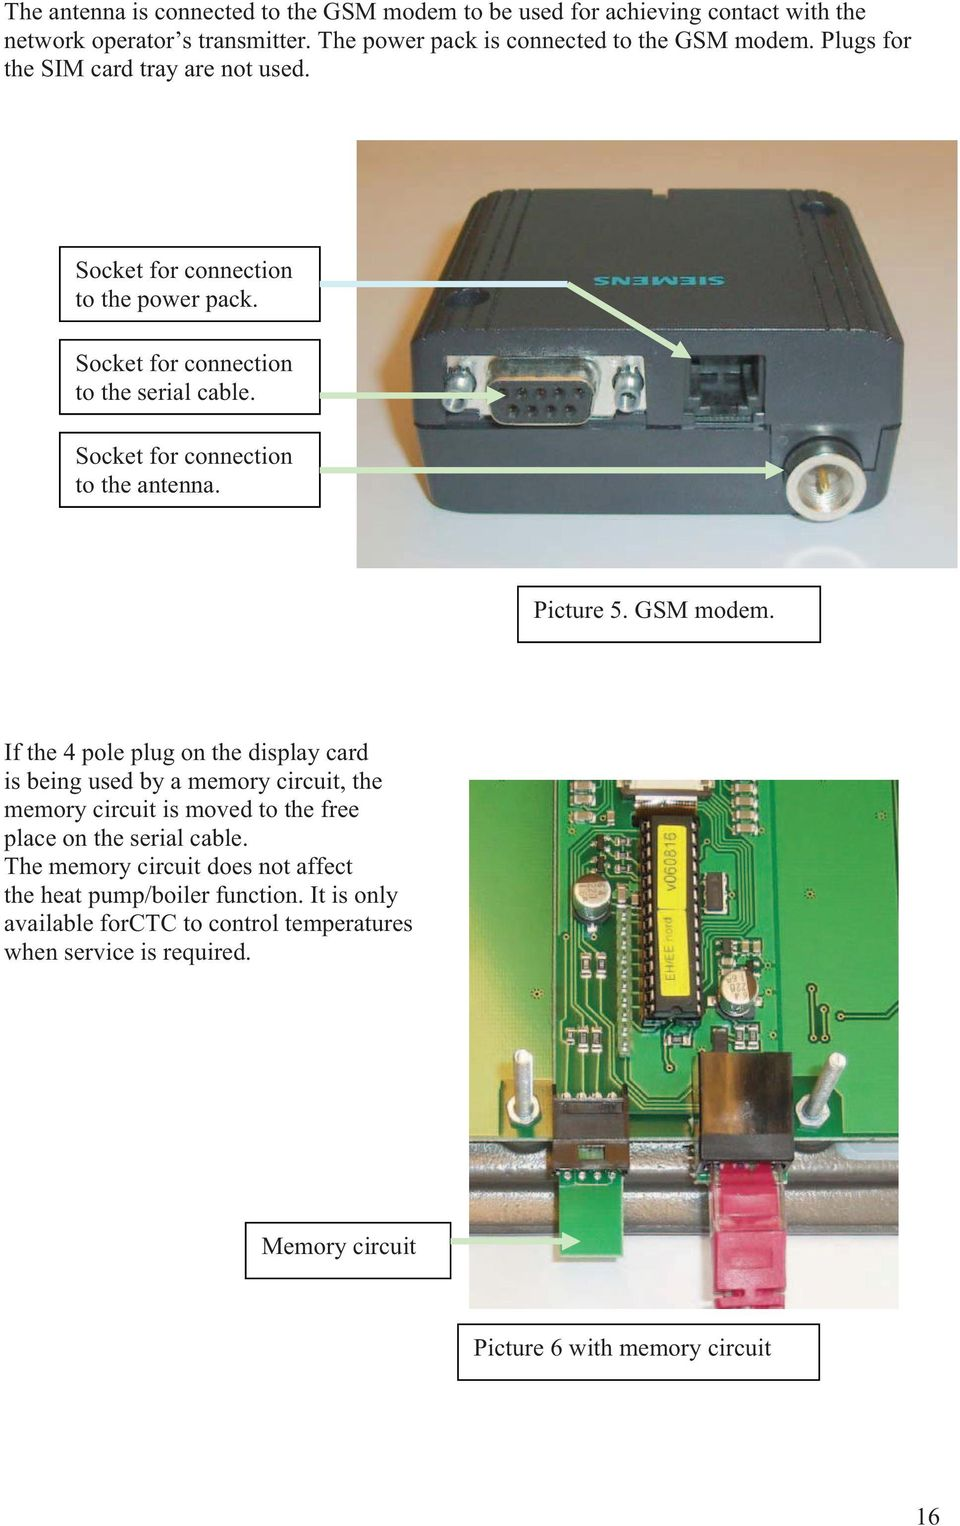 Picture 5. GSM modem. If the 4 pole plug on the display card is being used by a memory circuit, the memory circuit is moved to the free place on the serial cable.